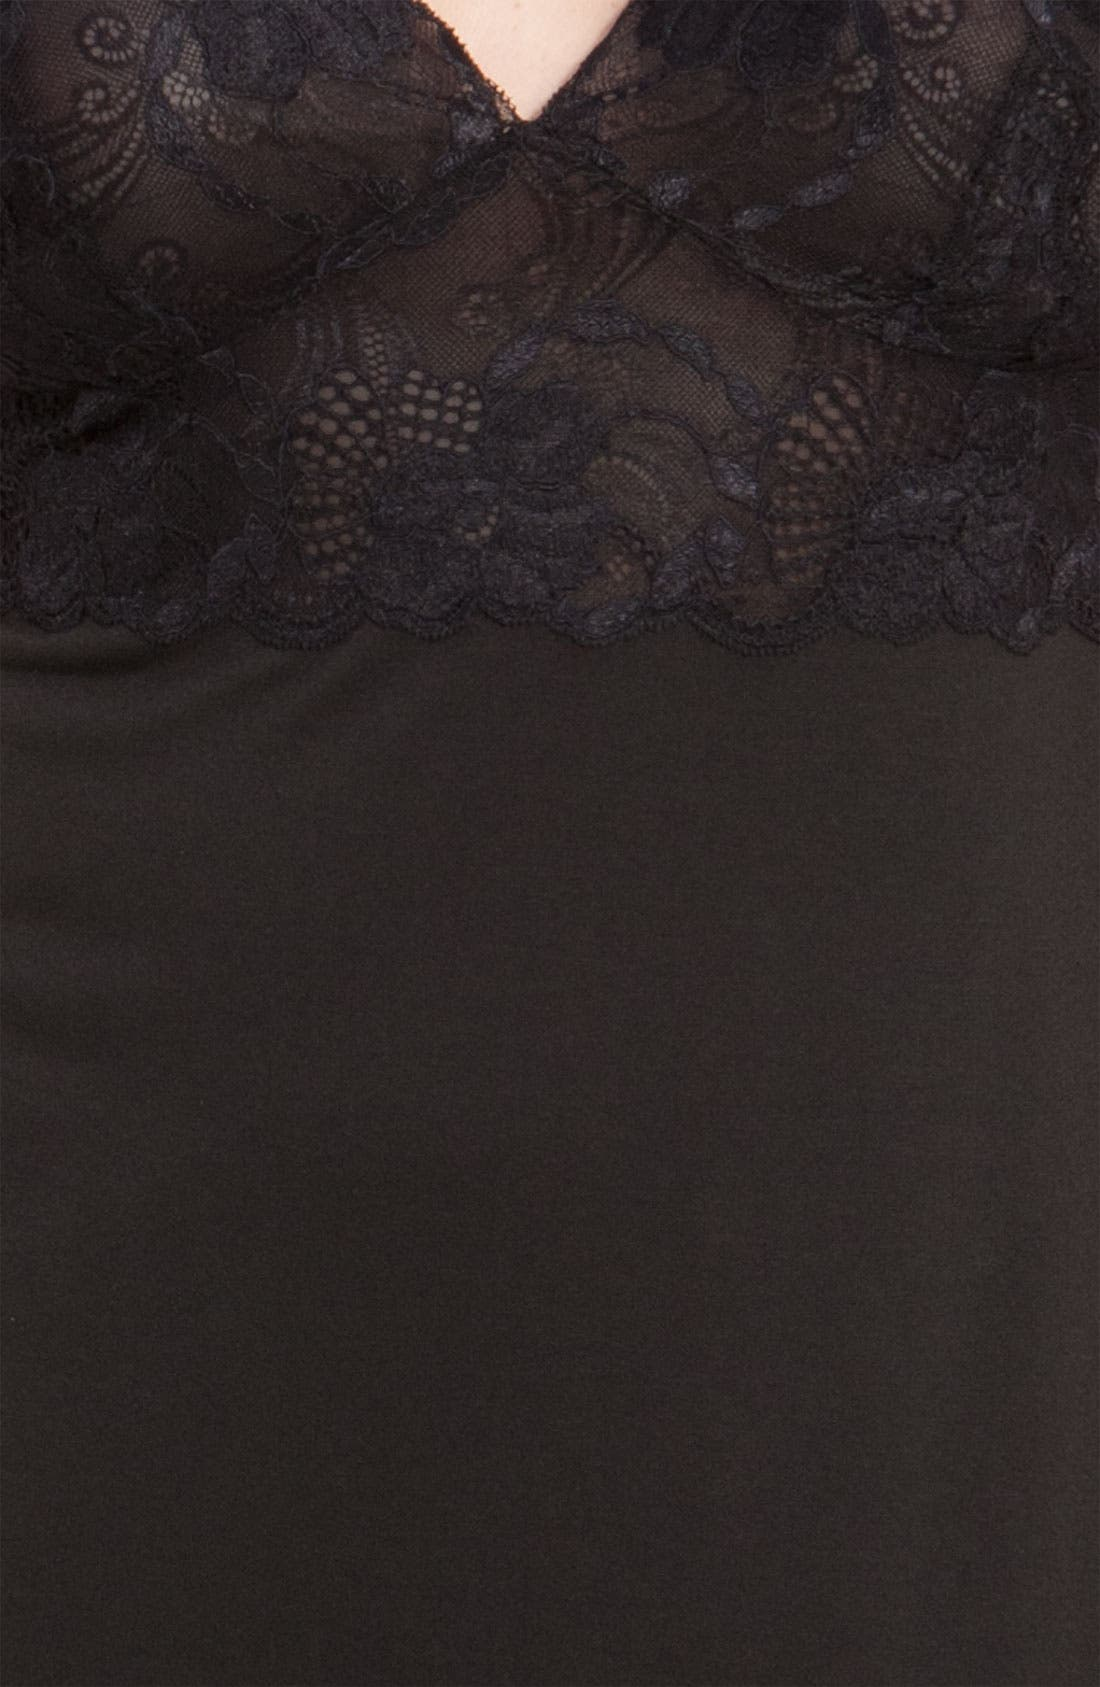 Zen Floral Chemise,                             Alternate thumbnail 4, color,                             BLACK